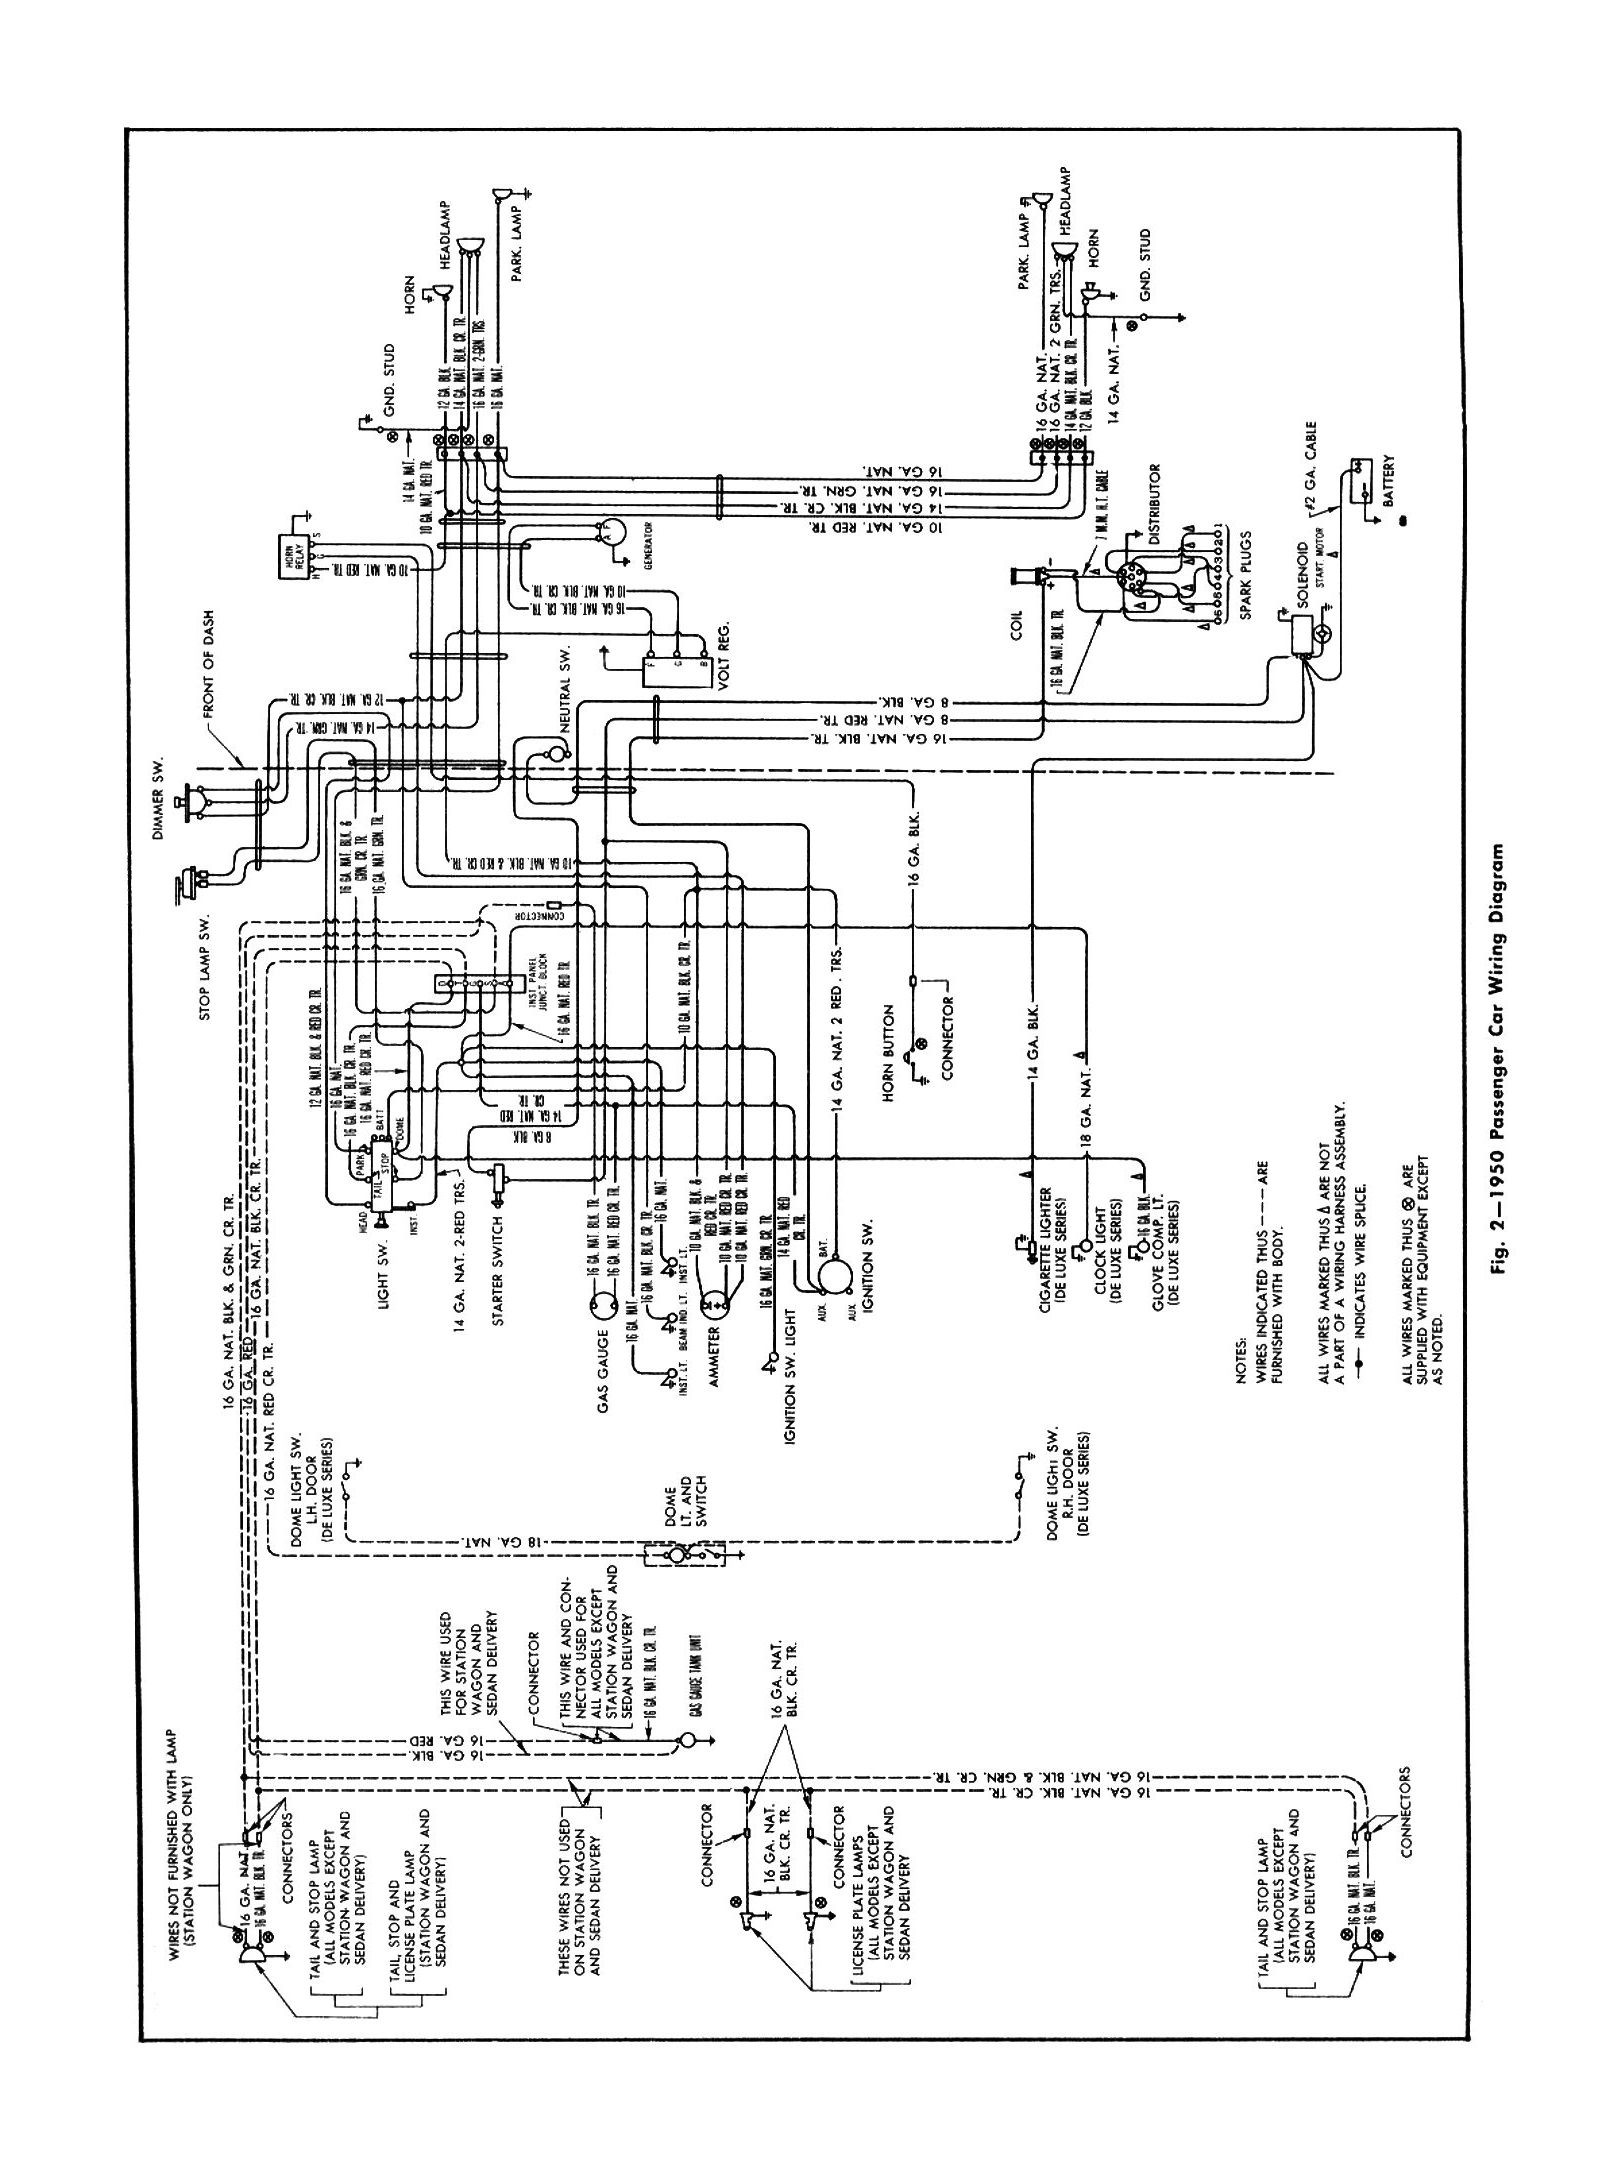 50car chevy wiring diagrams chevy truck wiring diagram at eliteediting.co